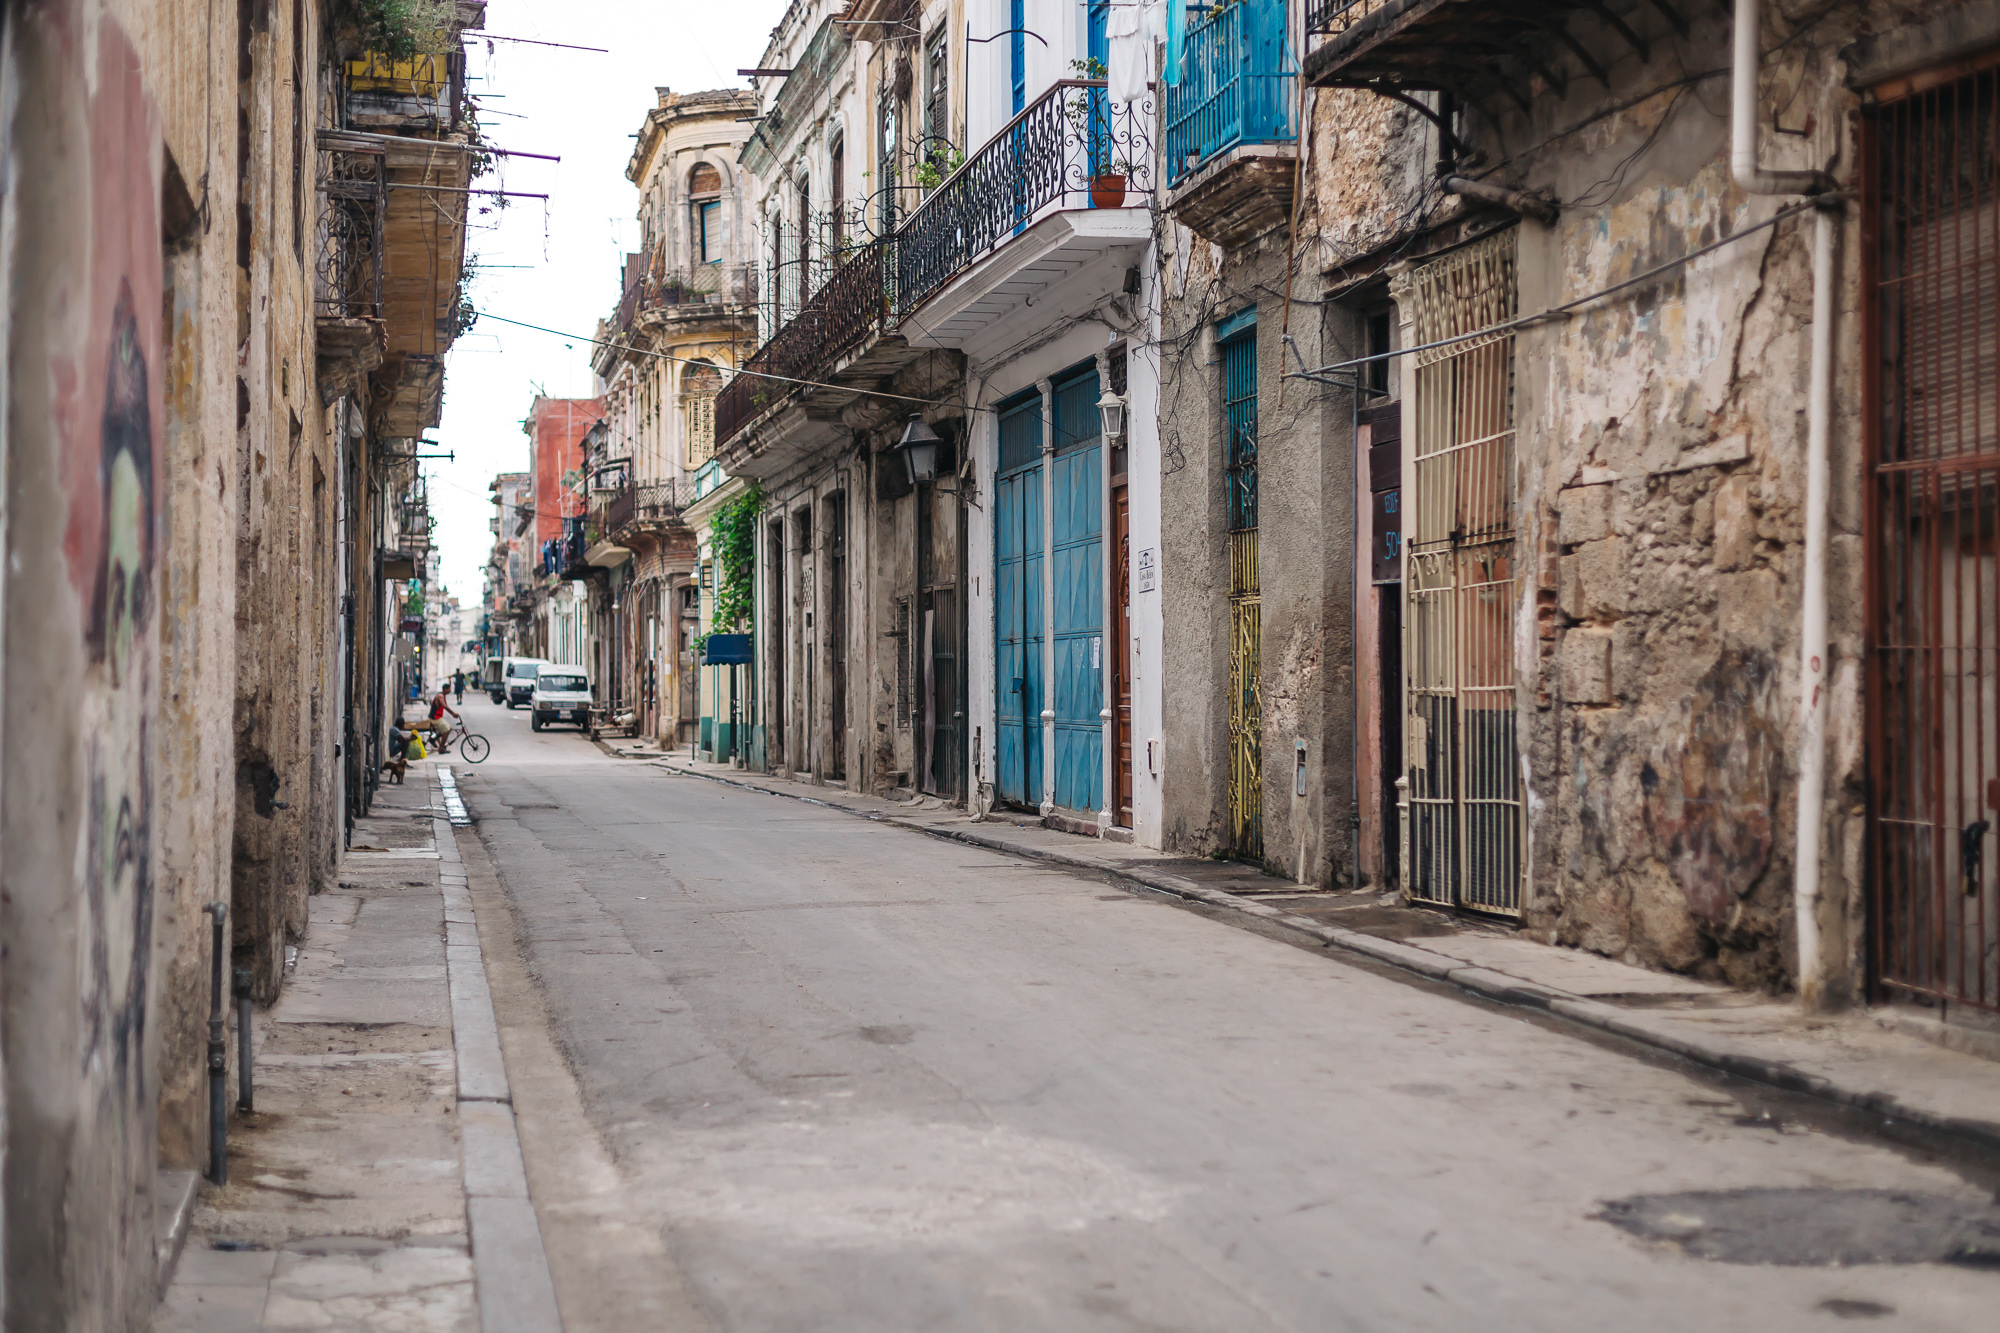 Typical streets of Old Havana outside of the tourist area